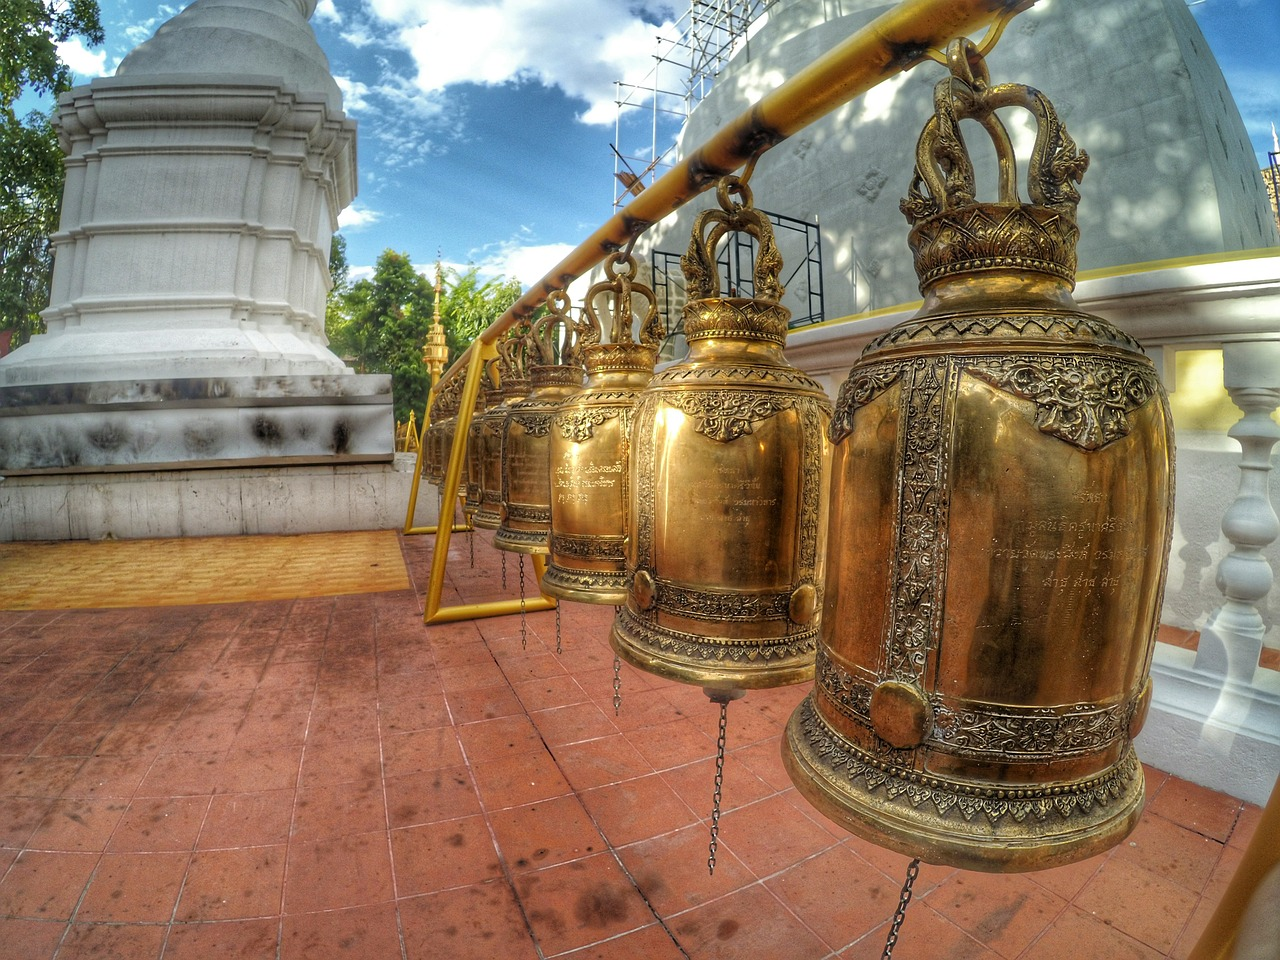 Budget Travel Guide to Chiang Mai